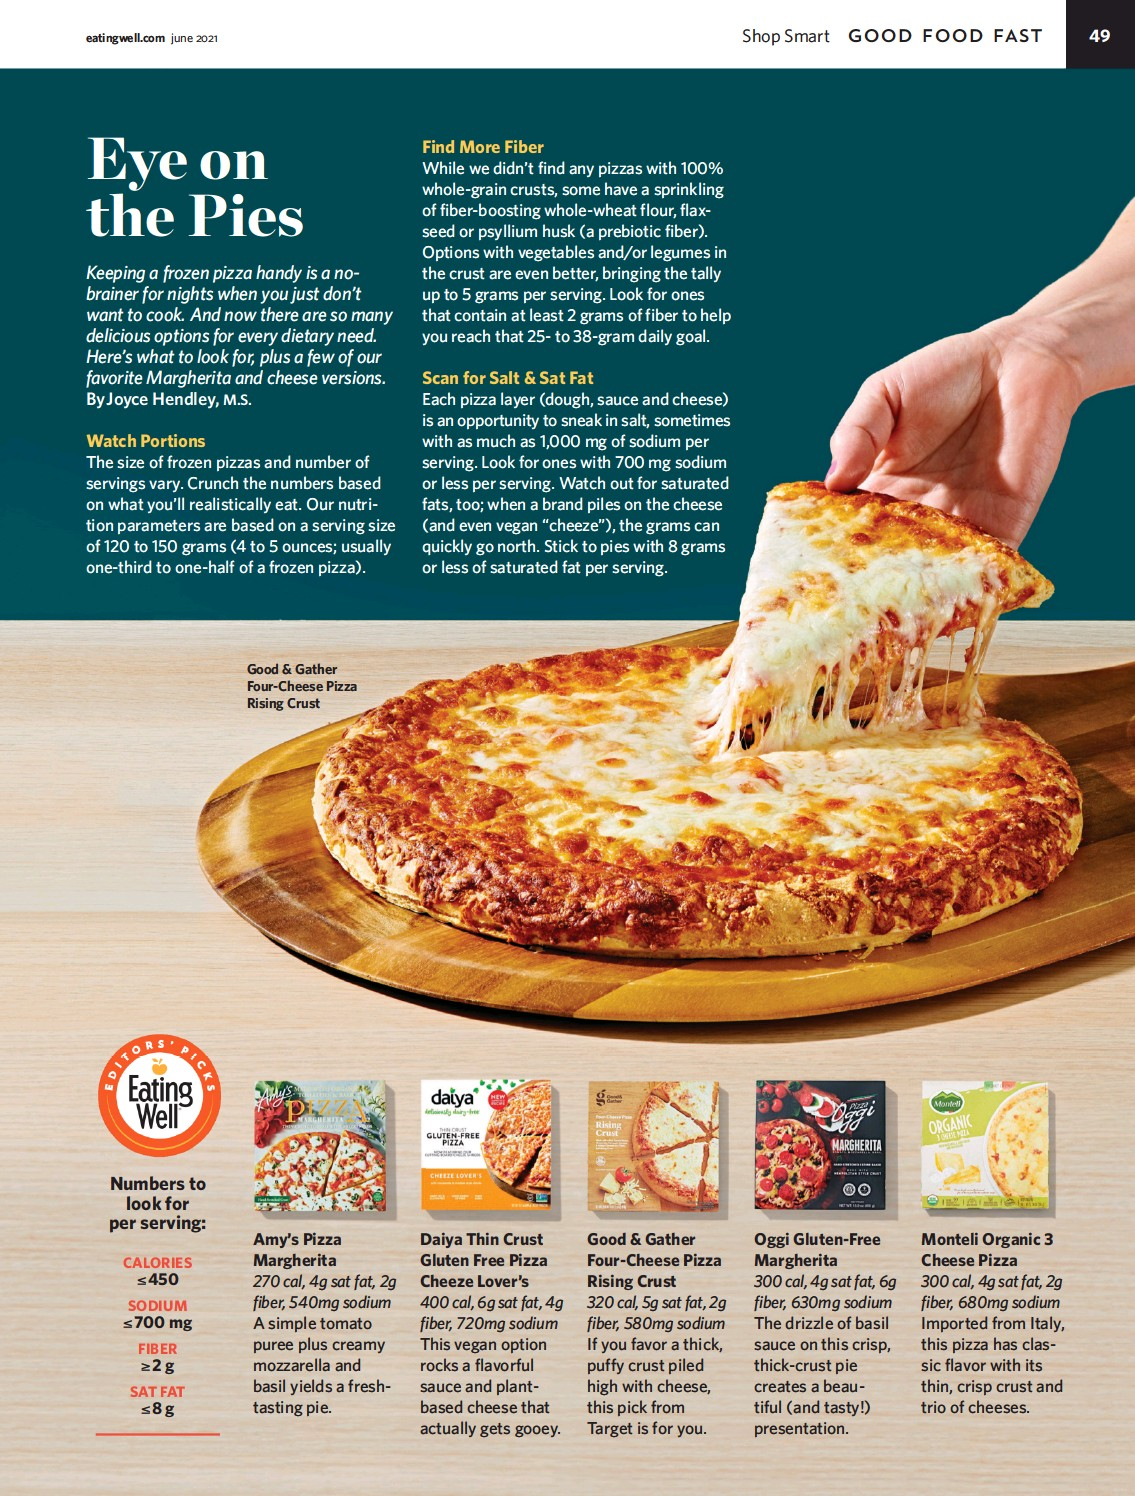 ??  ?? Good & Gather Four-cheese Pizza Rising Crust